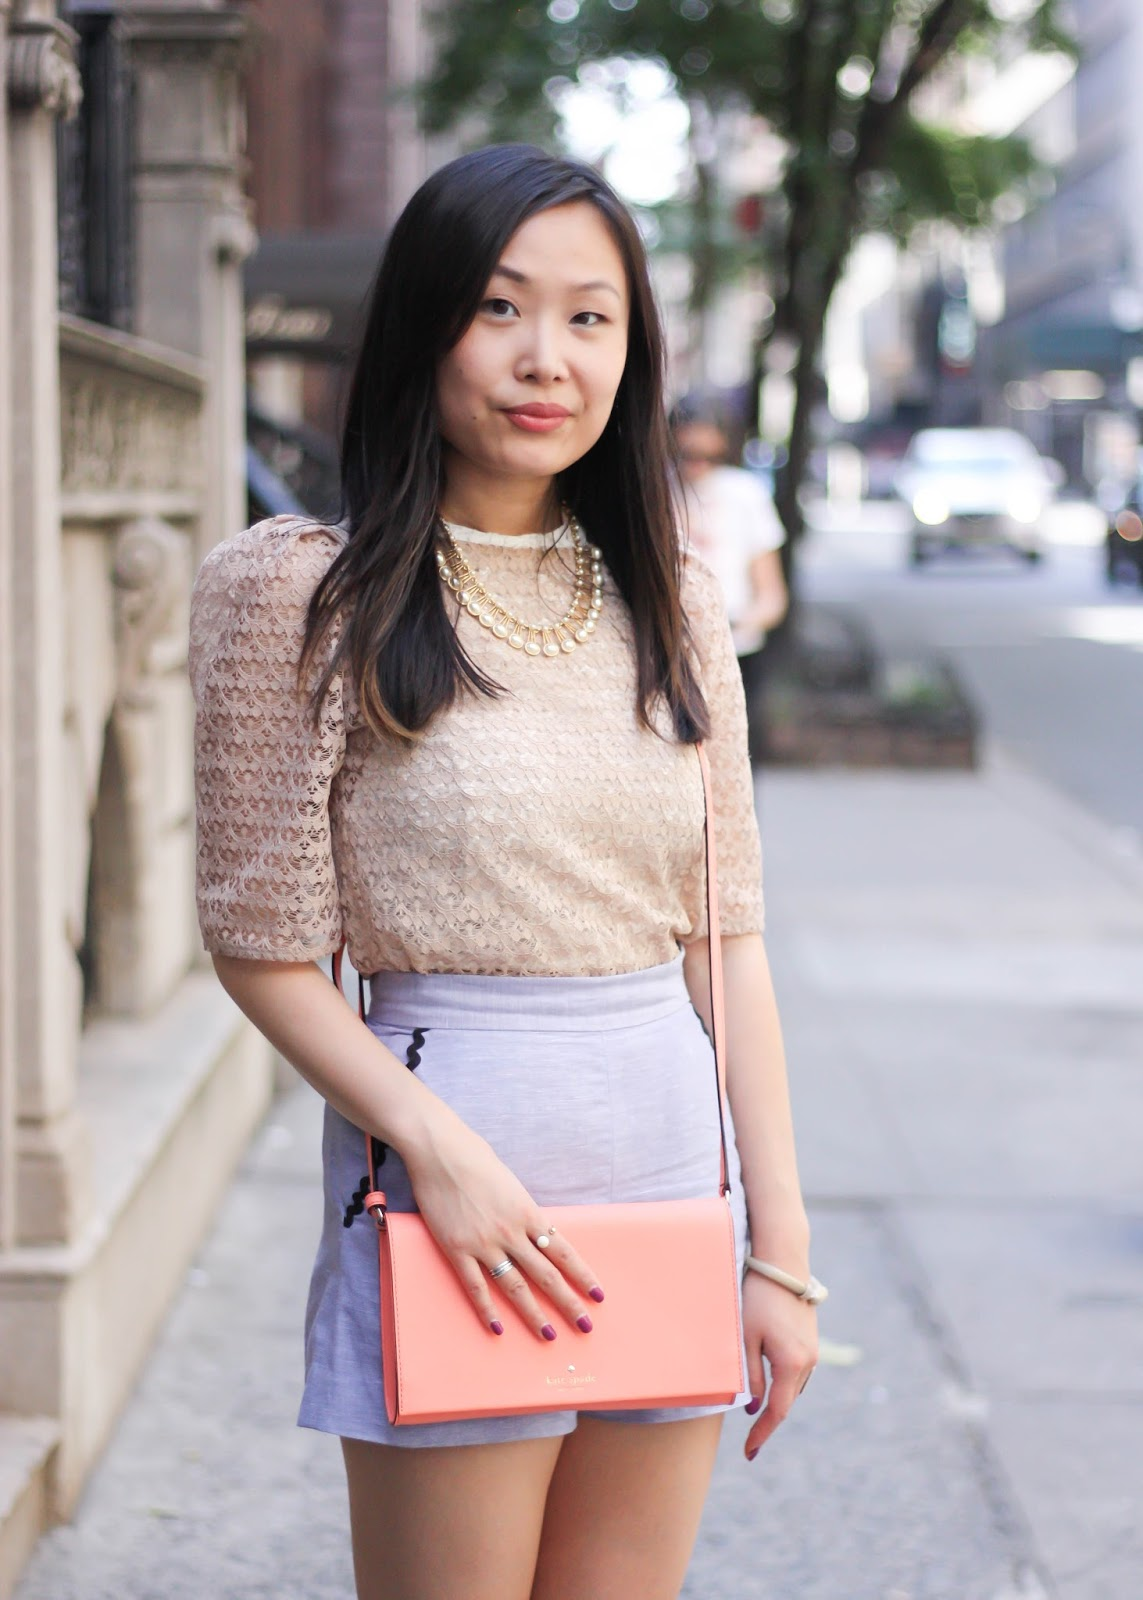 Feminine Summer Shorts and Pink Lace Top